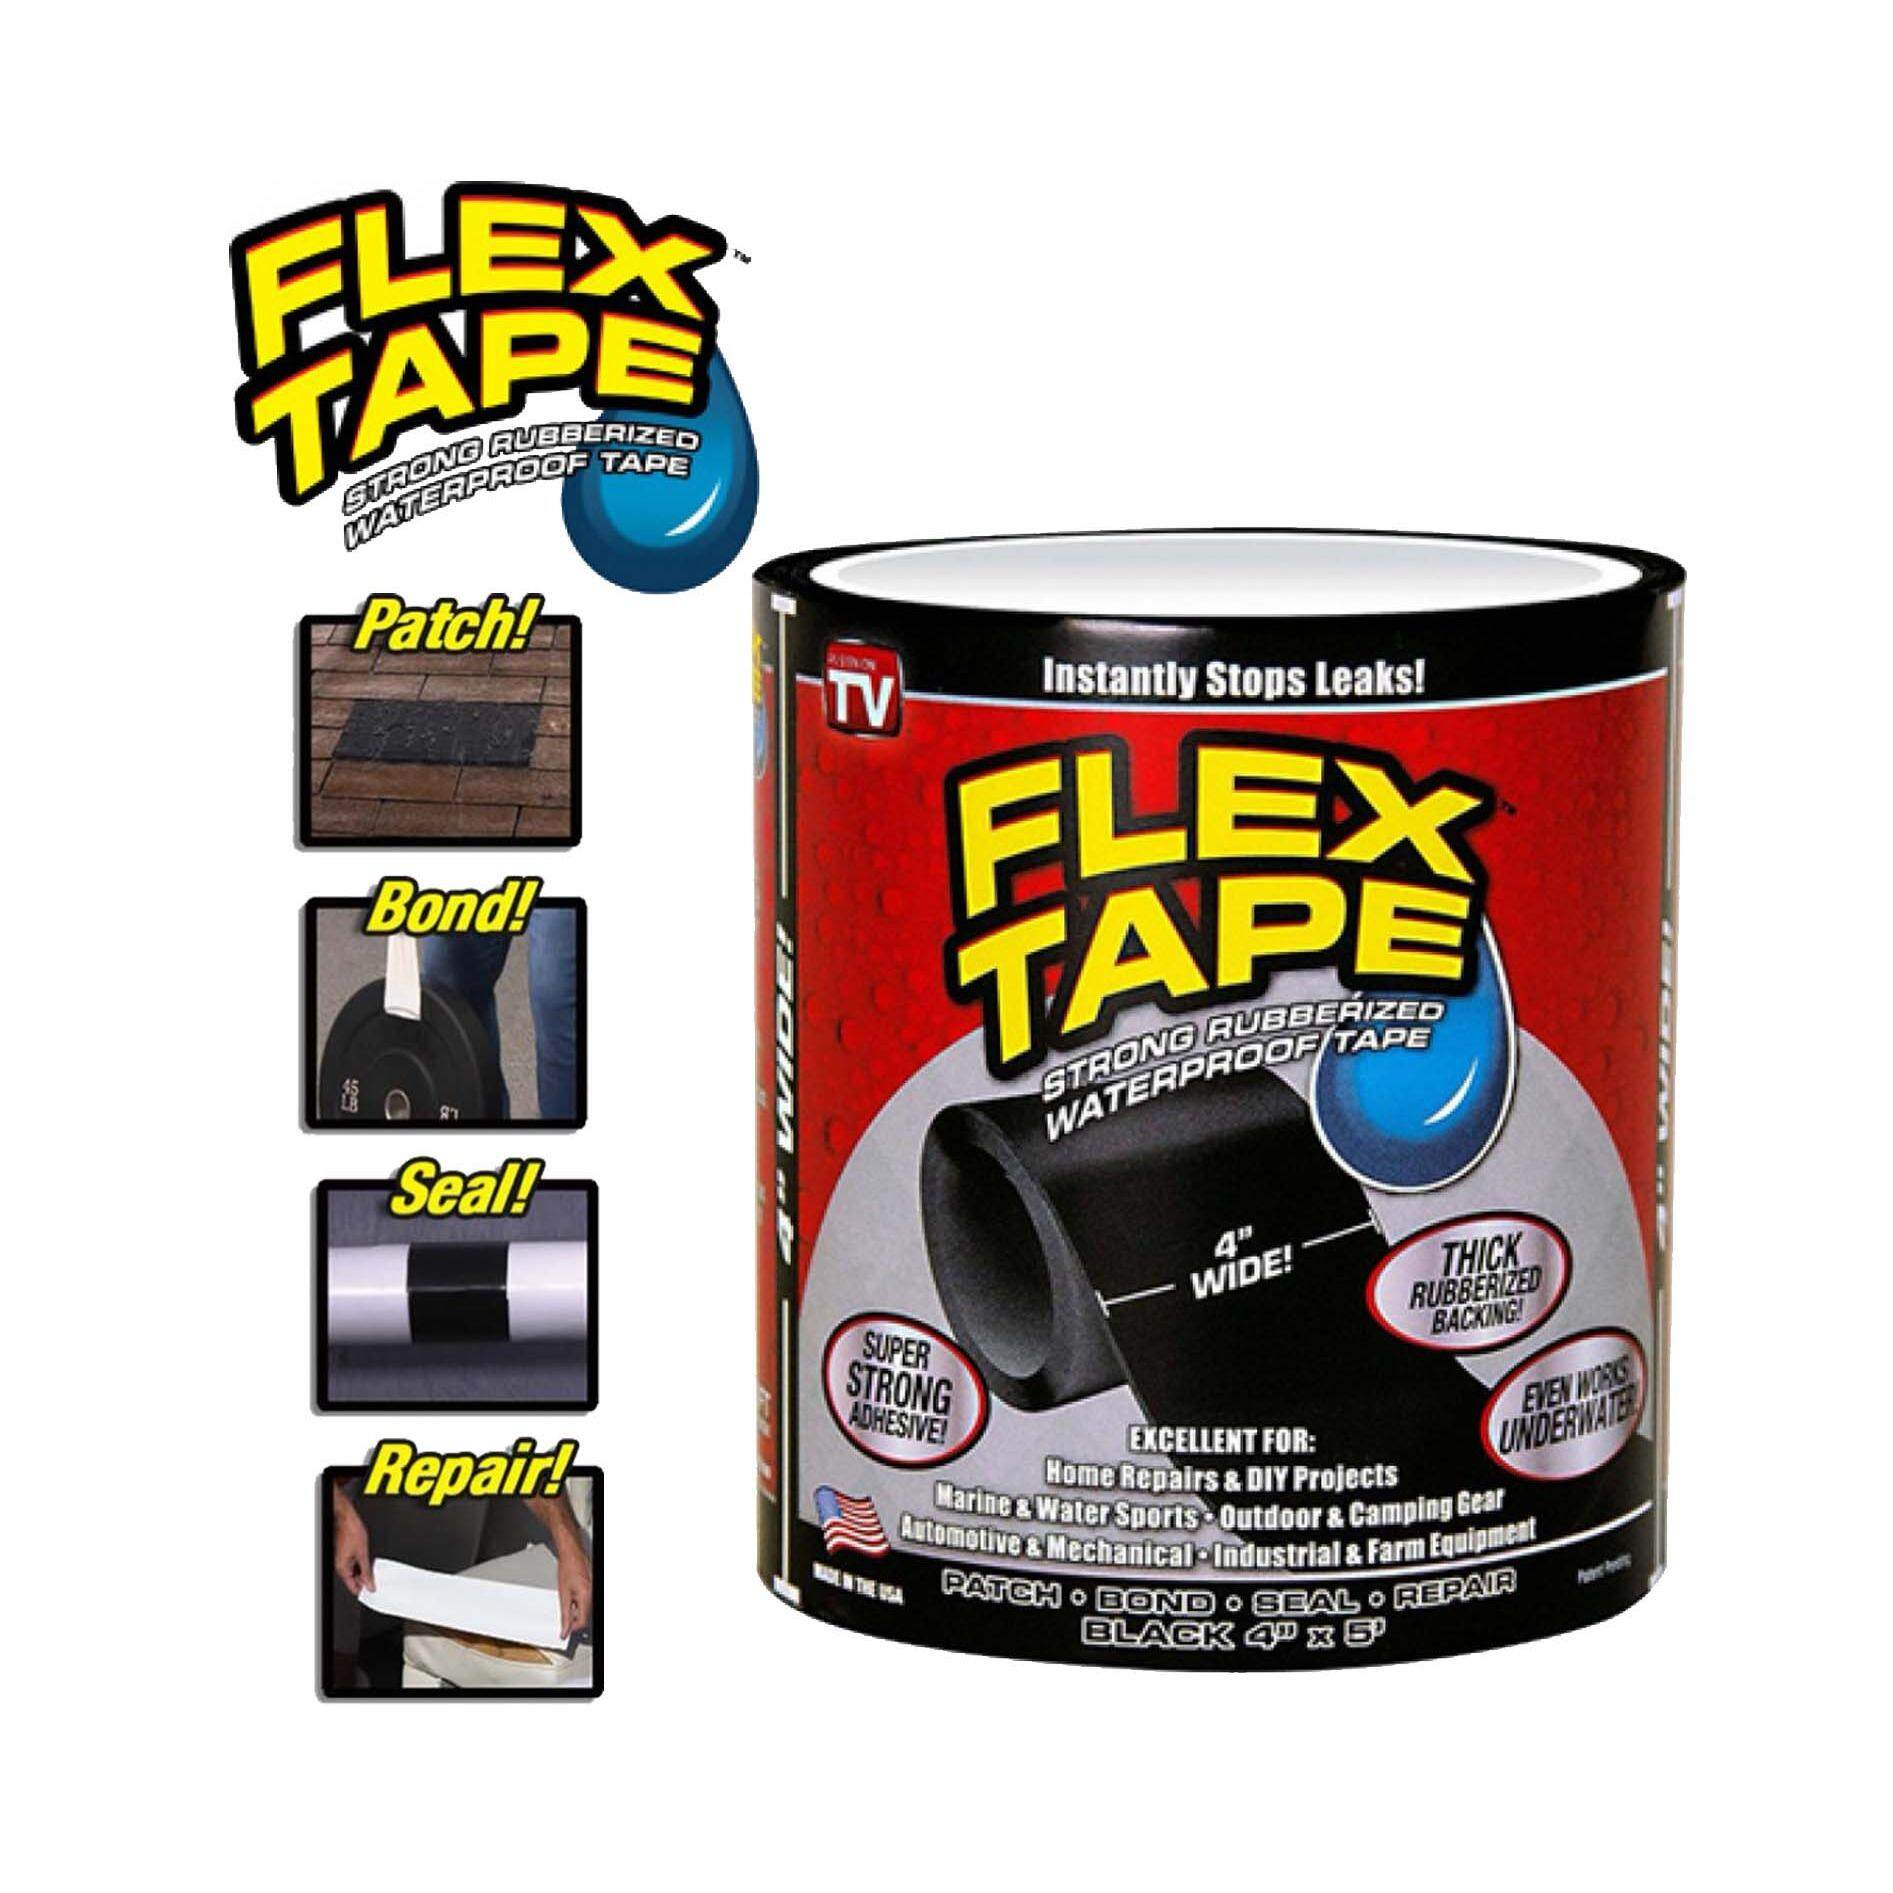 4 Wide Waterproof Seal Stop Leaks Tape By Snapid.